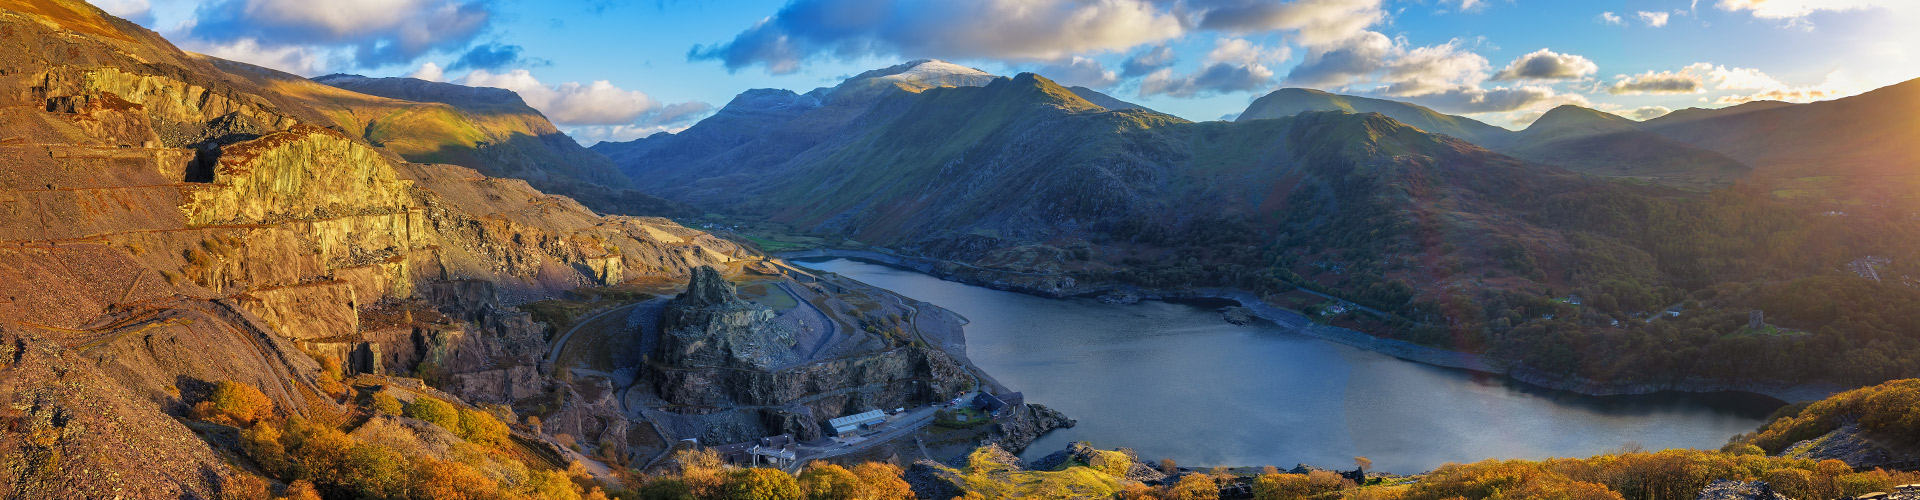 Wales: Snowdonia & Surrounds